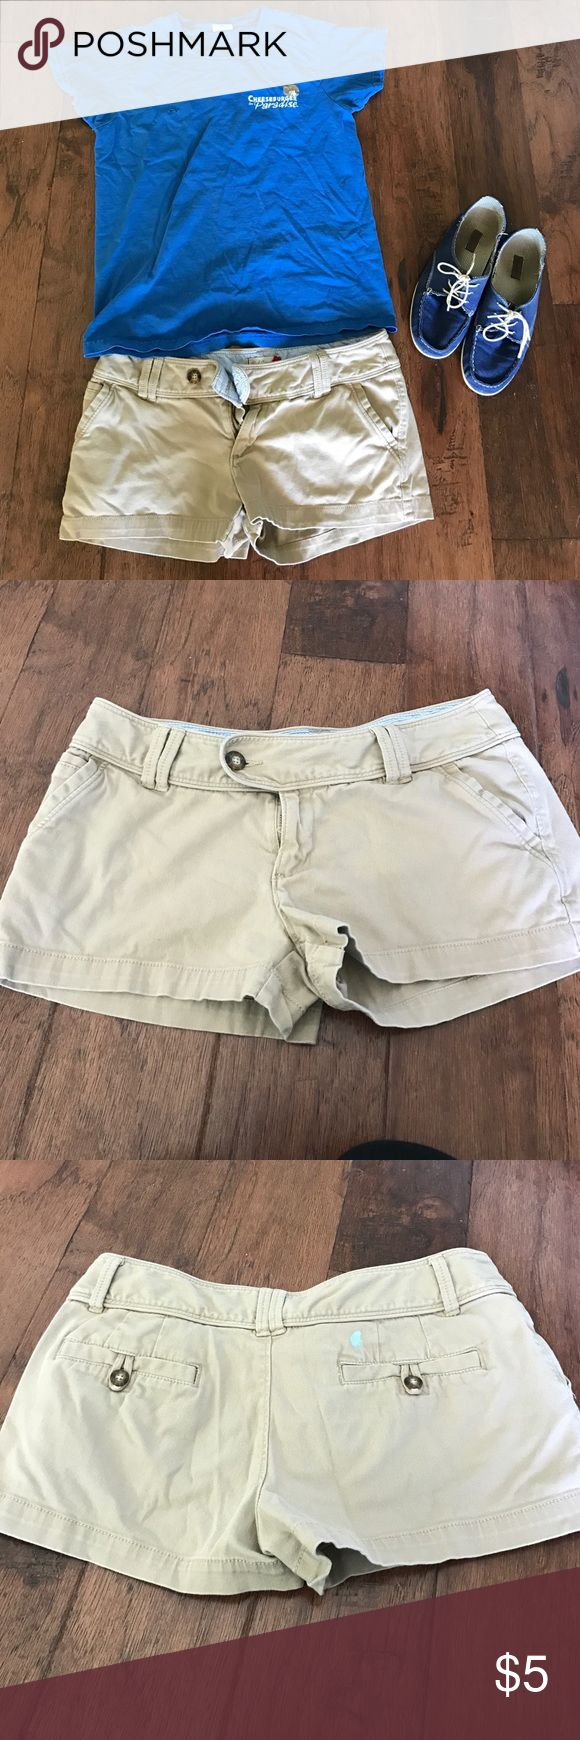 Cheeky khaki shorts! Red Camel size 7. Fits more like a 5.  Small paint spot on right cheek. Great for waitressing hosting in hot summer. Easily cleaned and not a worry of they get messy! No wedgies. Make offer! Red Camel Shorts